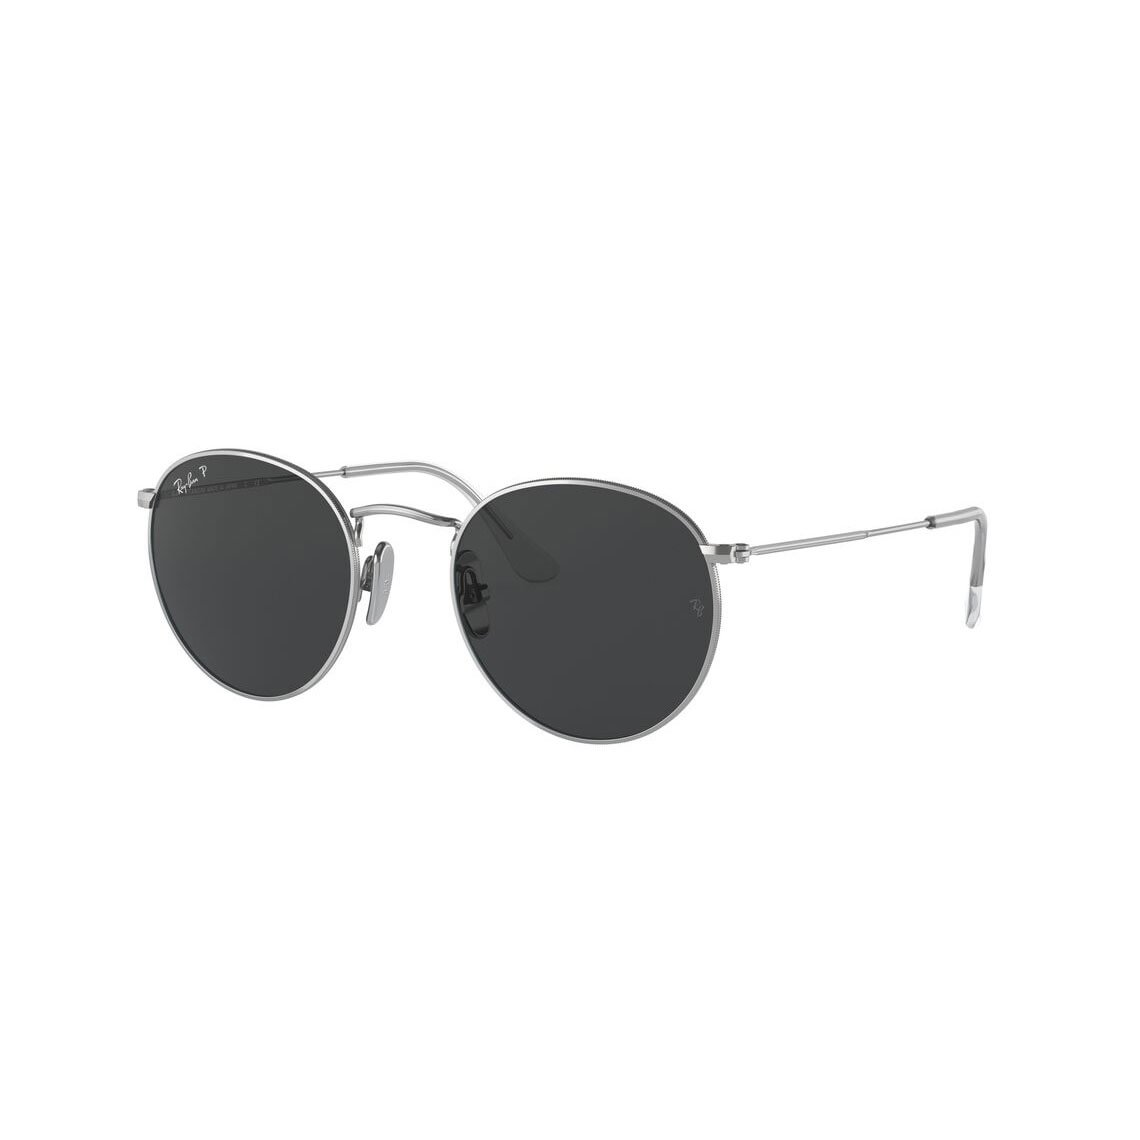 Ray-Ban Round RB8247 920948 5021